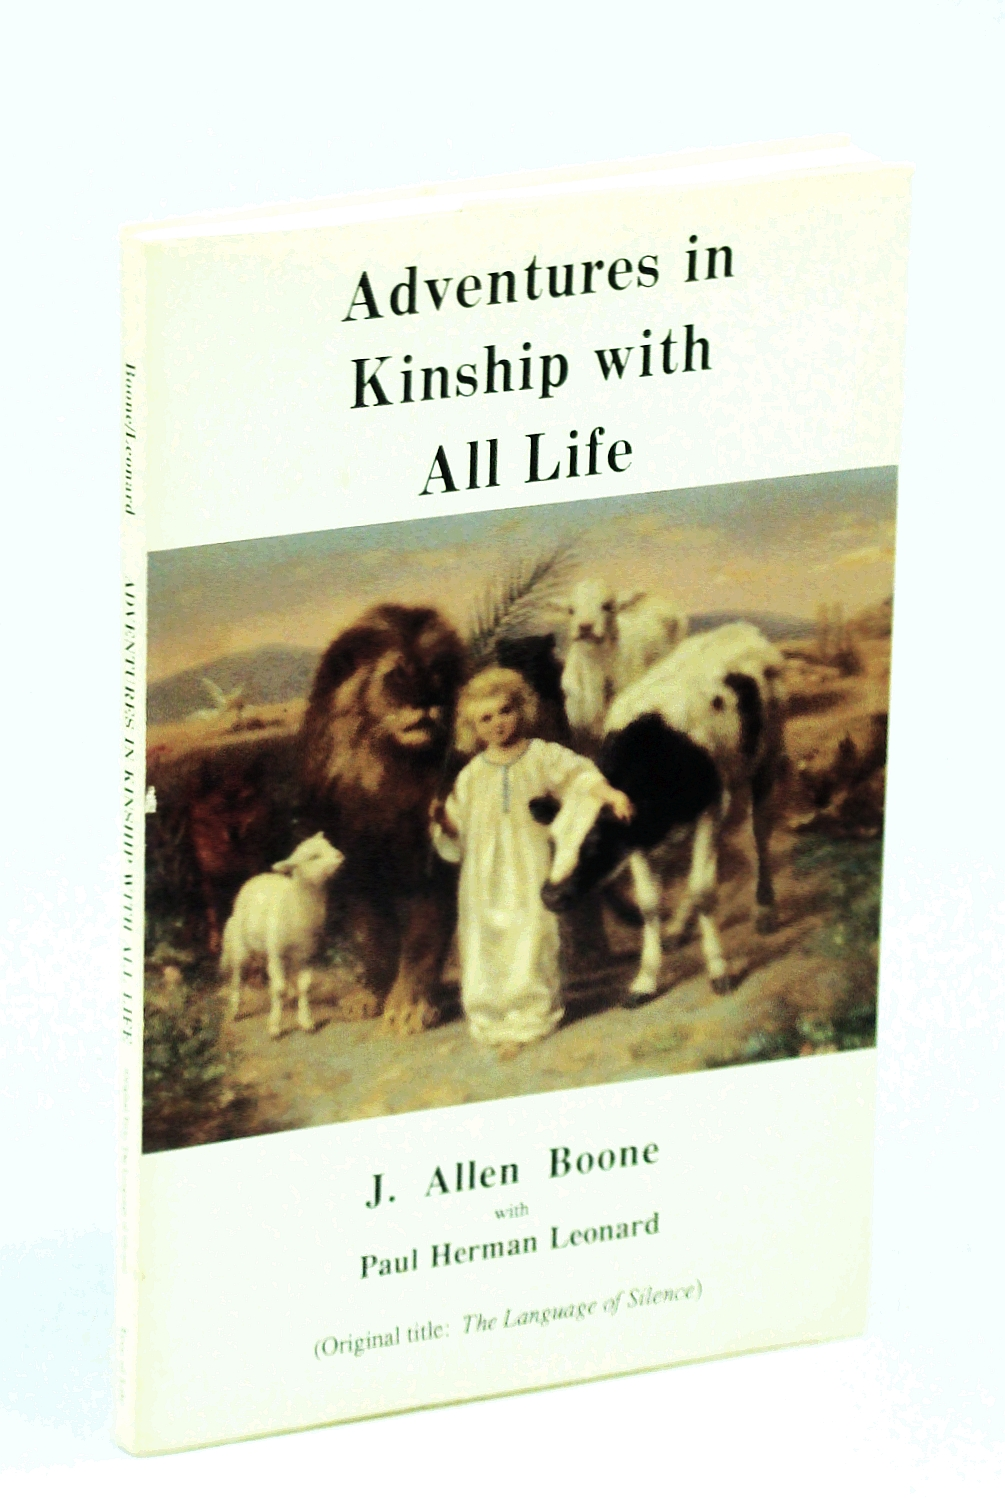 Image for Adventures in kinship with all life